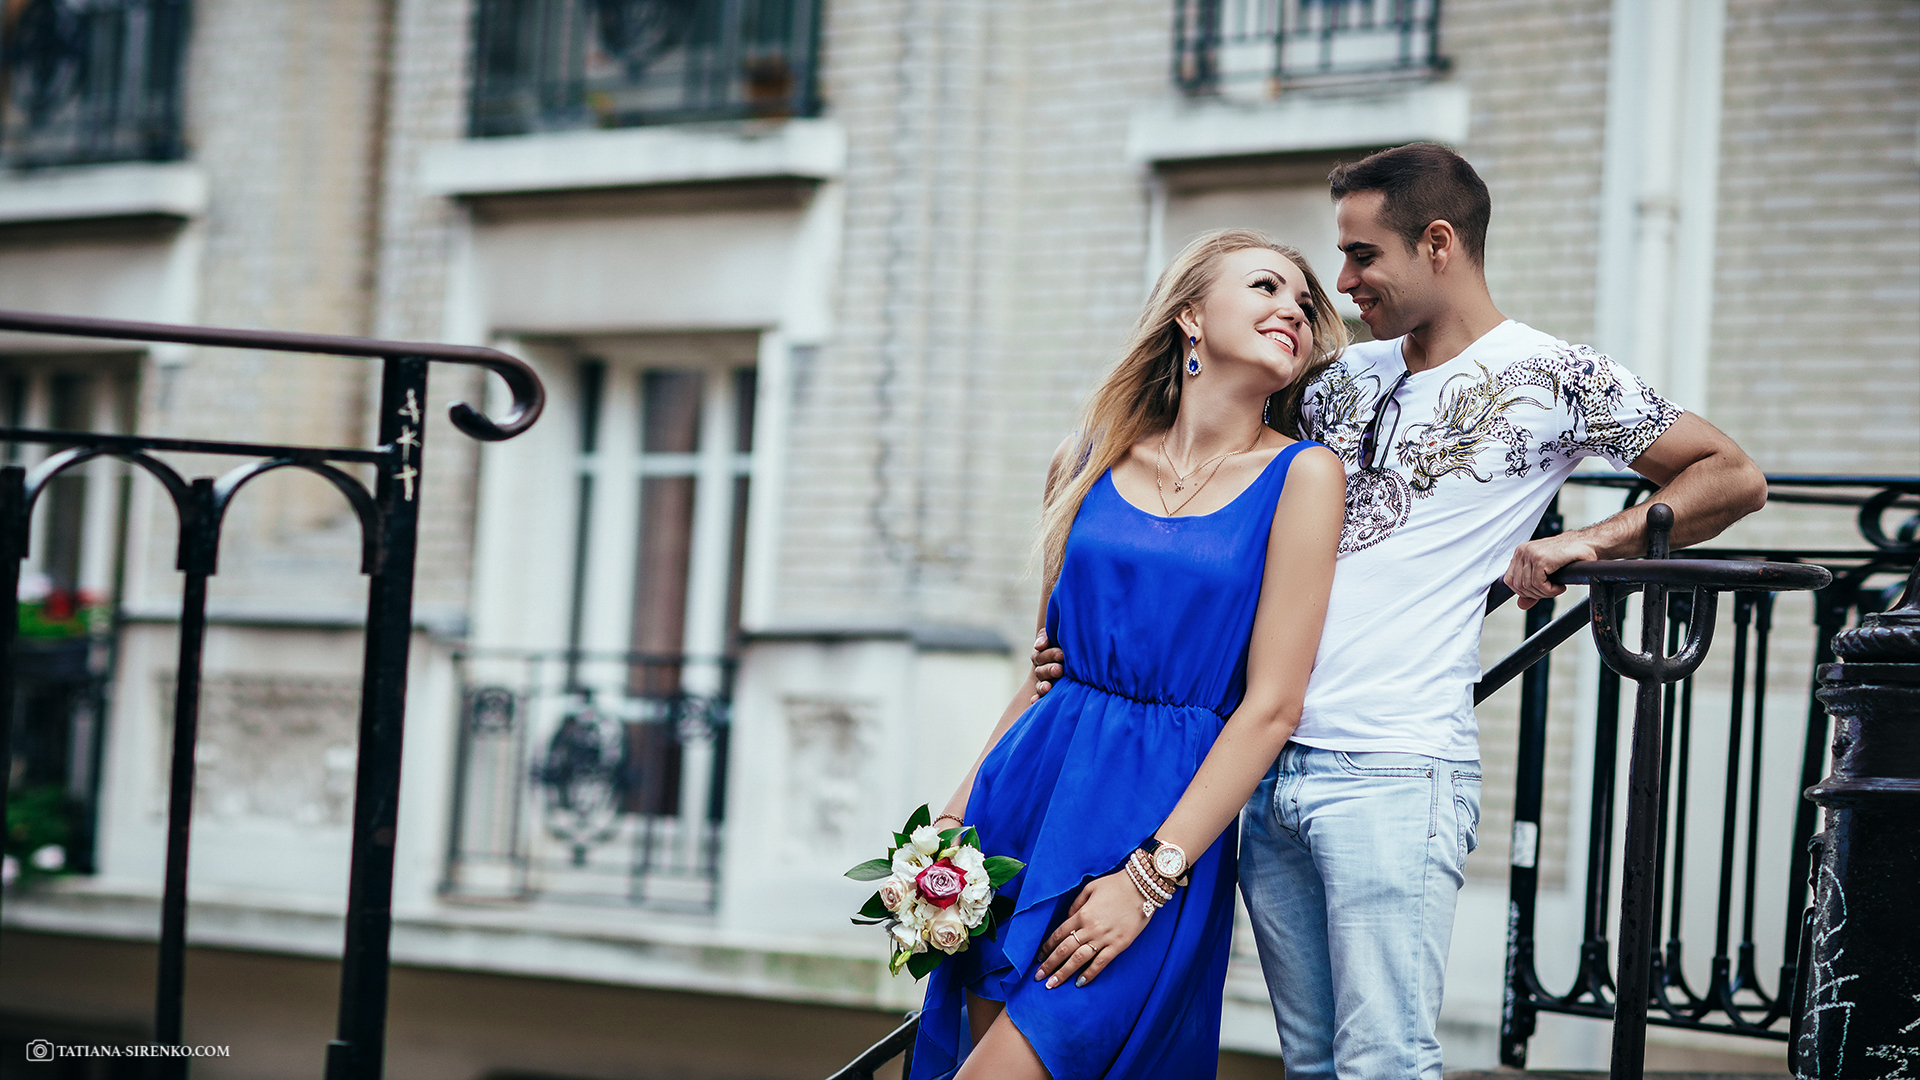 Lovе story in Paris